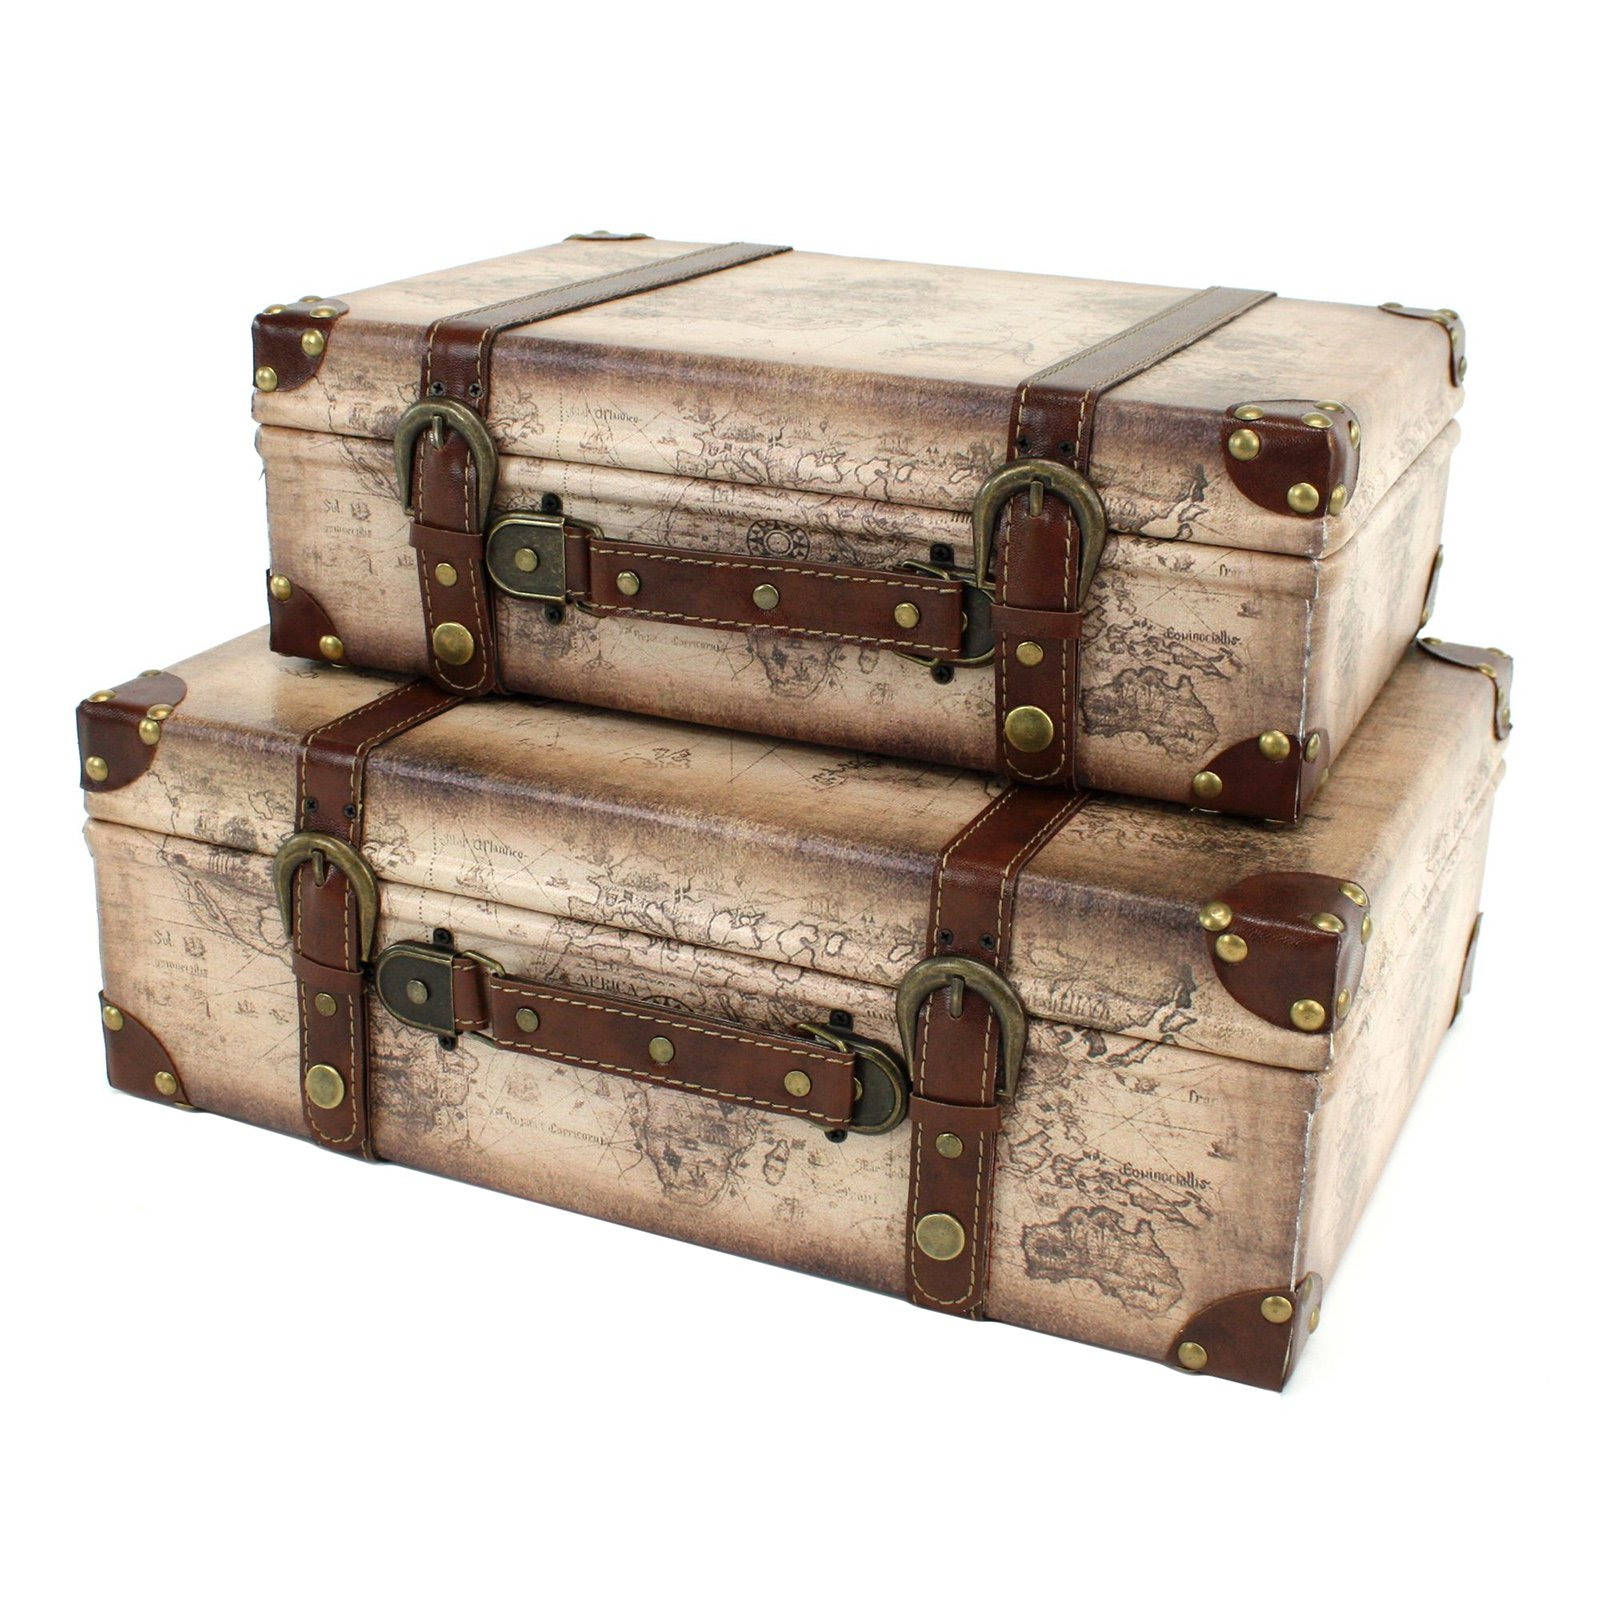 sc 1 st  Walmart & Aspire Home Accents Windsor Suitcase Trunks - Set of 2 - Walmart.com